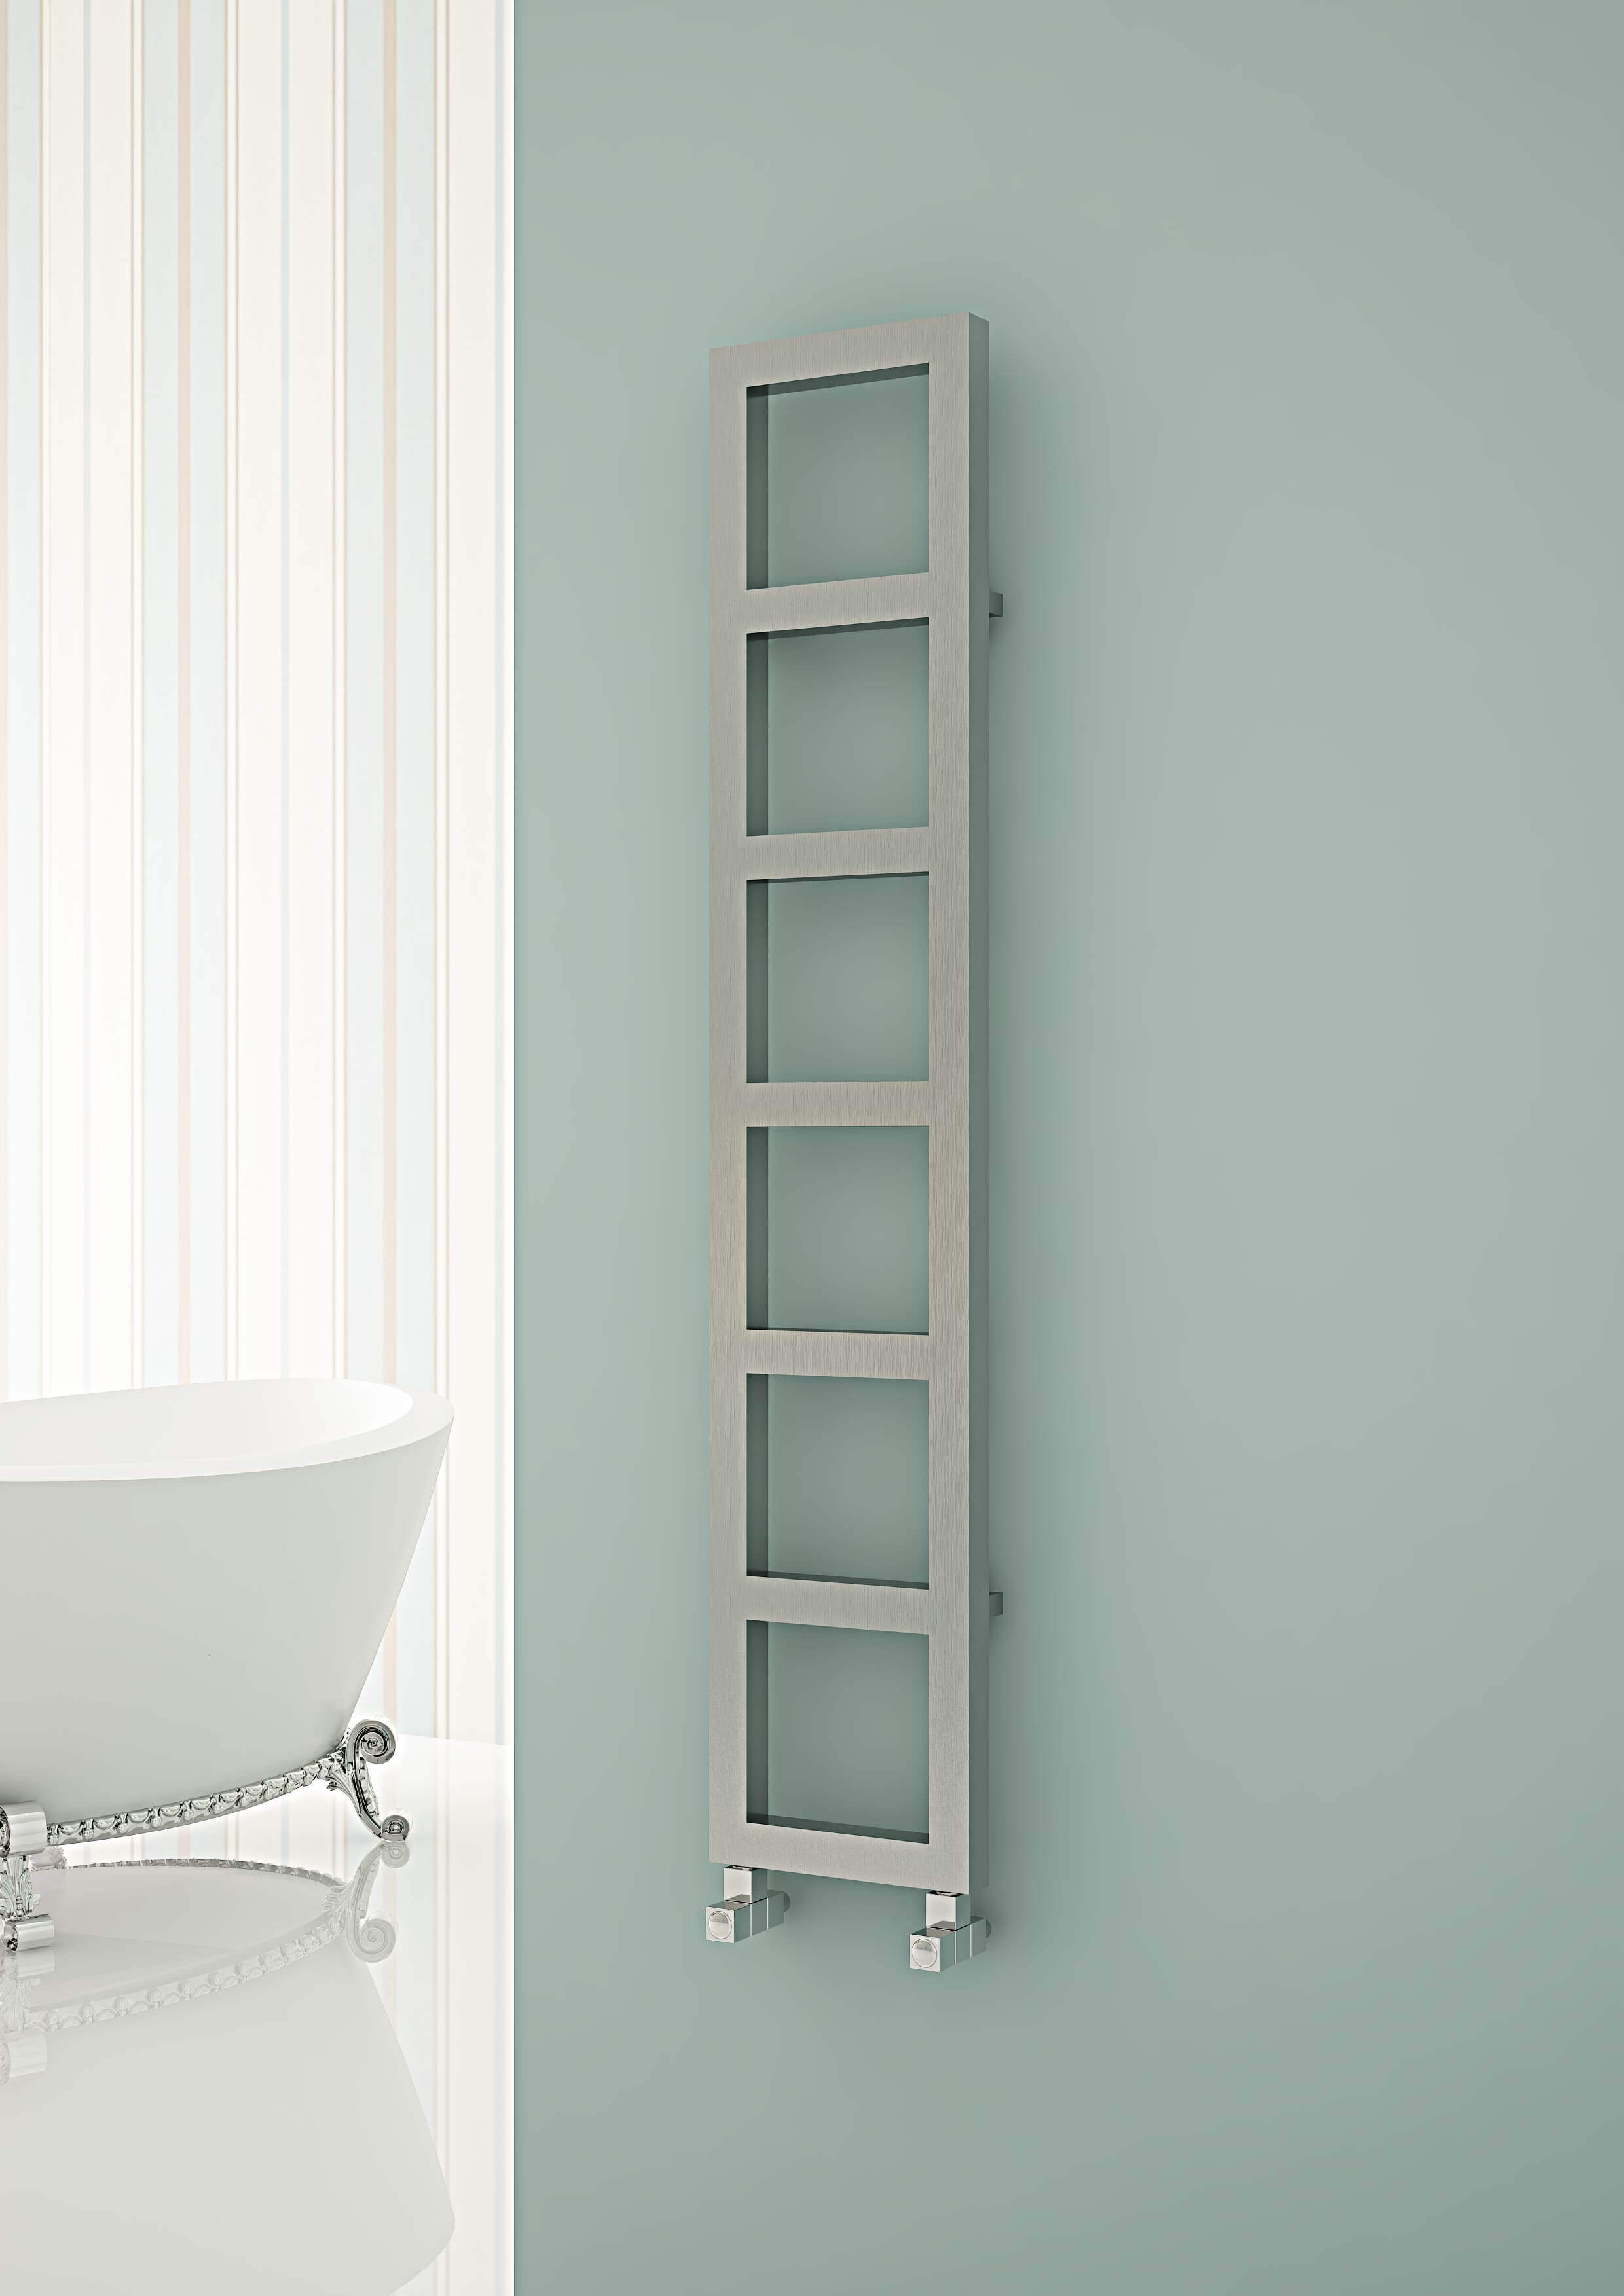 Carisa Kare Towel Radiator The Designer Radiator Company